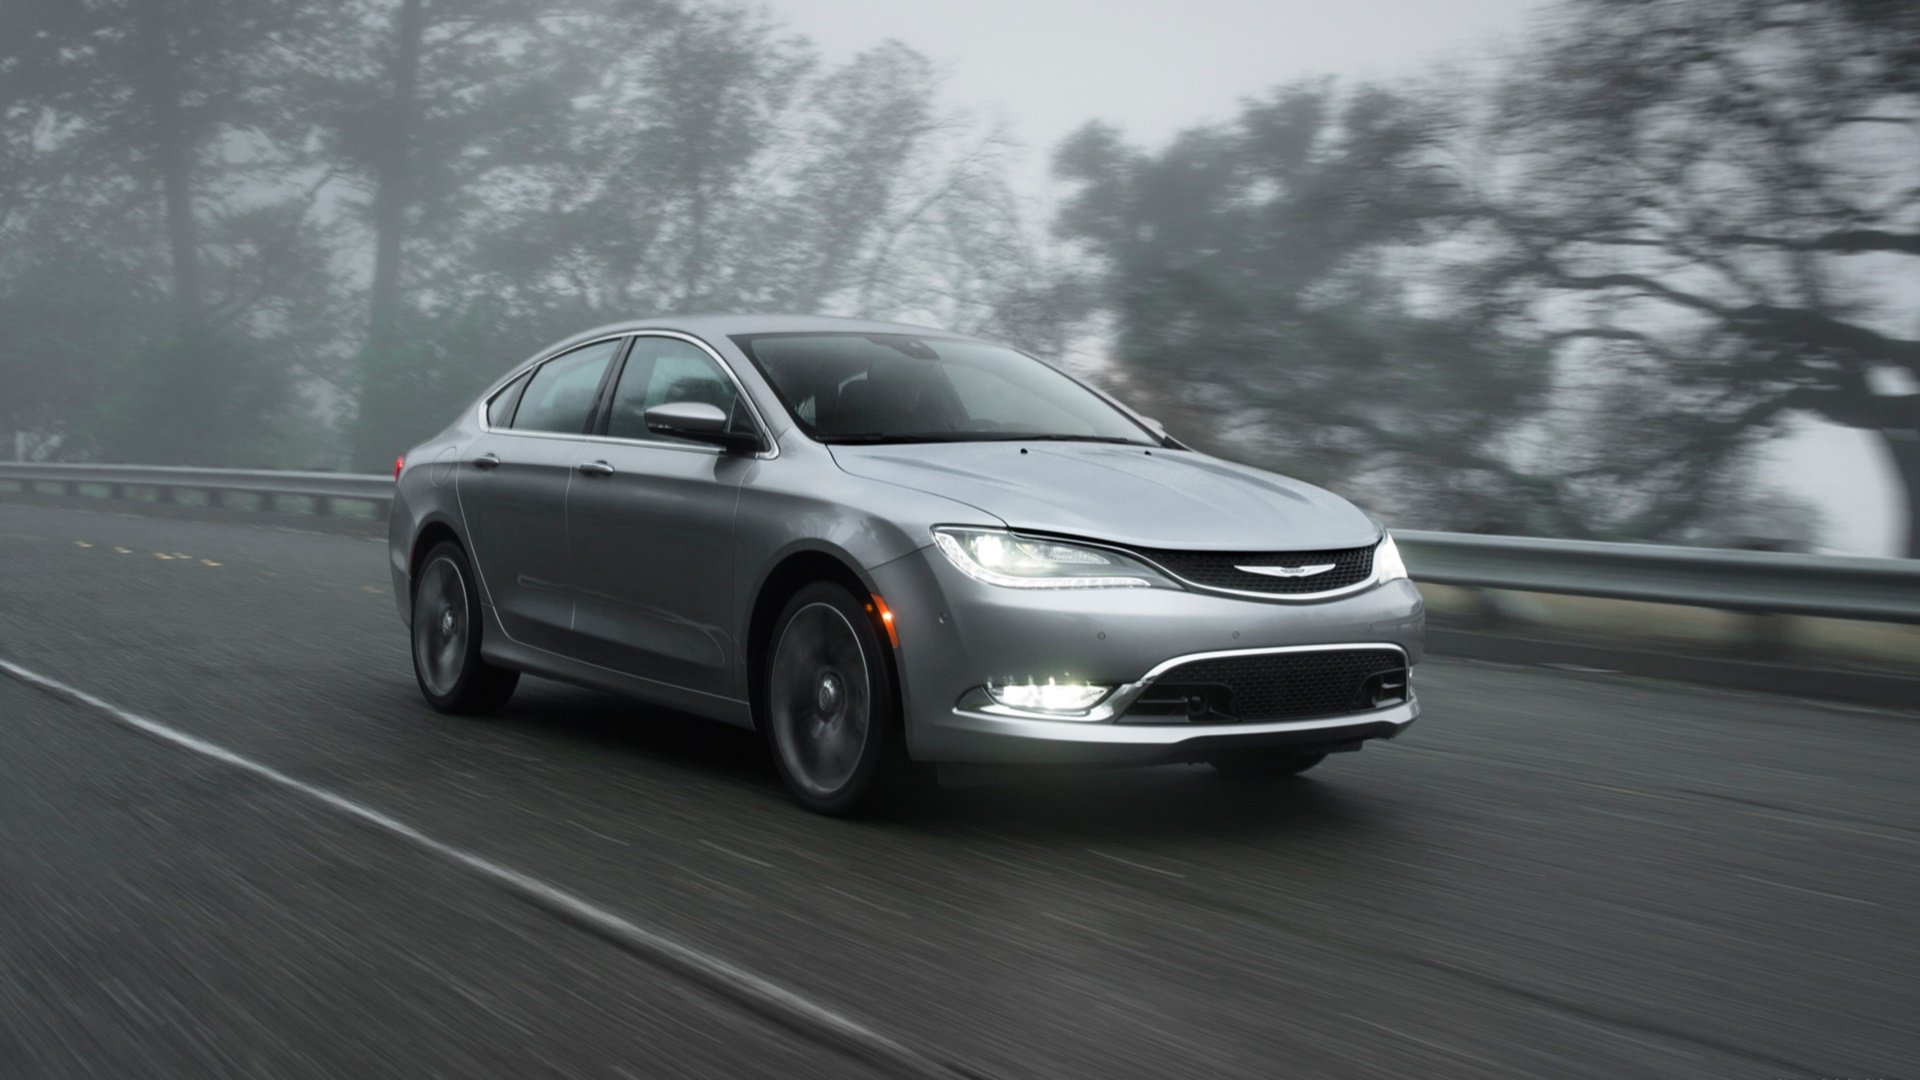 Vehicles   Chrysler 200 Wallpaper 1920x1080